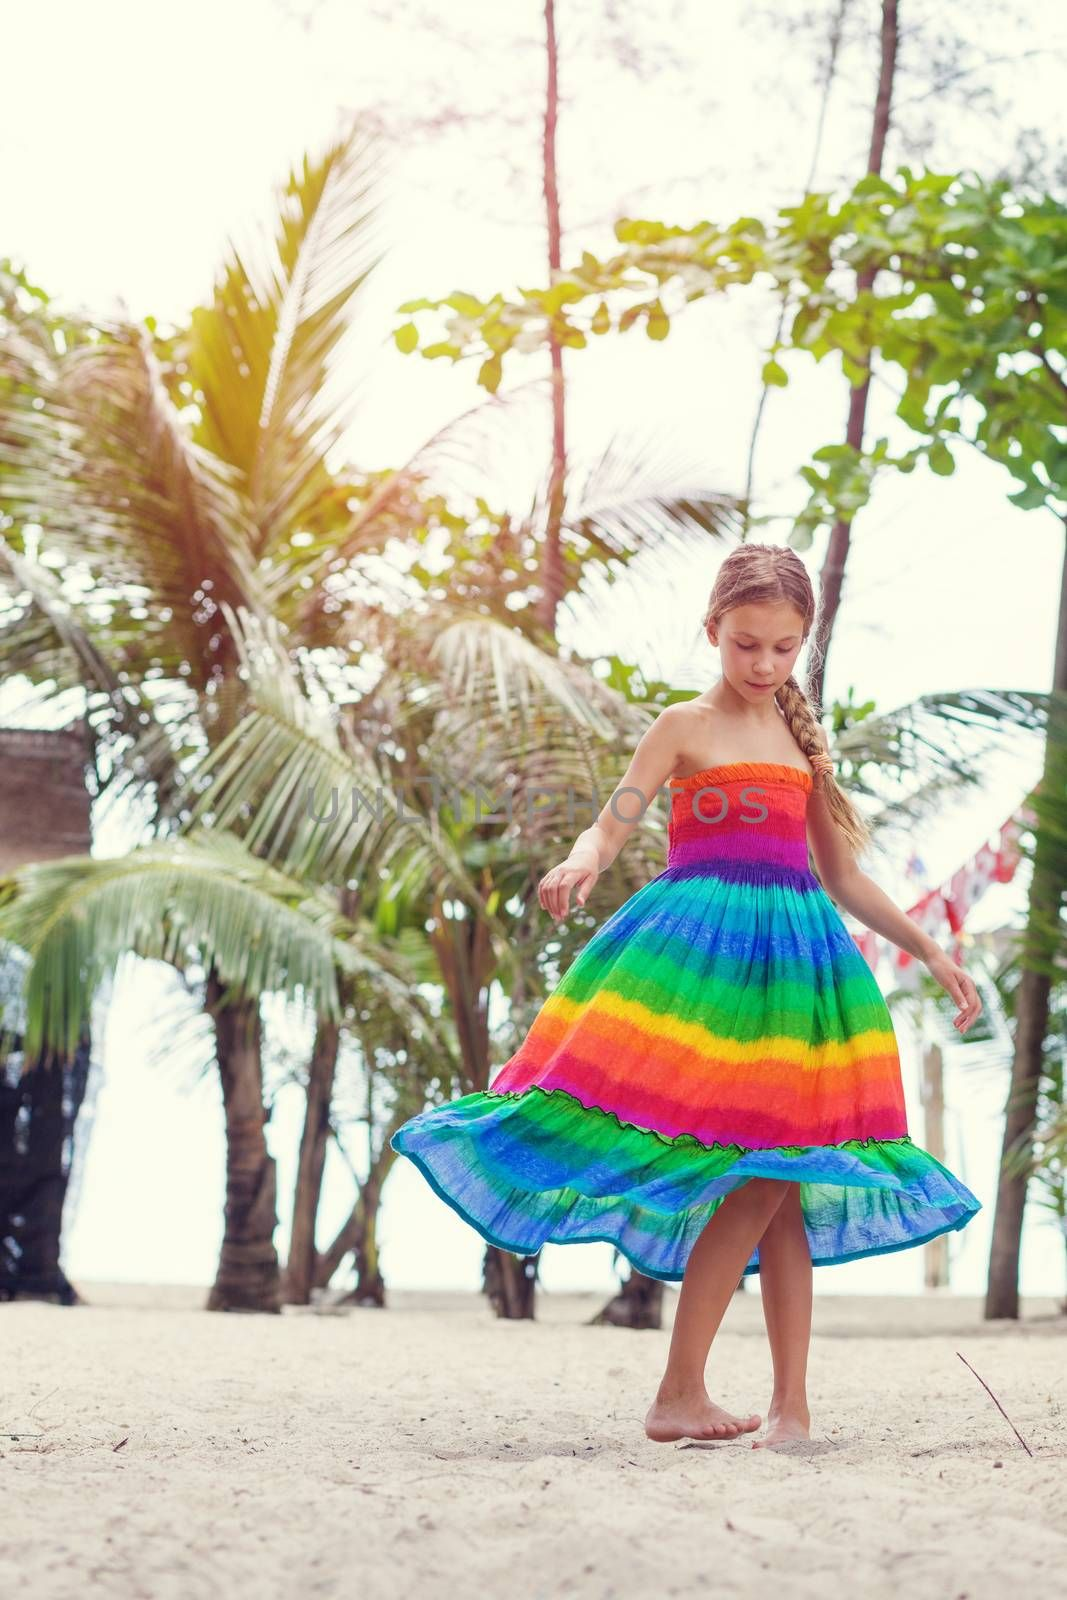 8 years old girl wearing colorful rainbow dress resting on the tropical palm beach in Thailand in summer